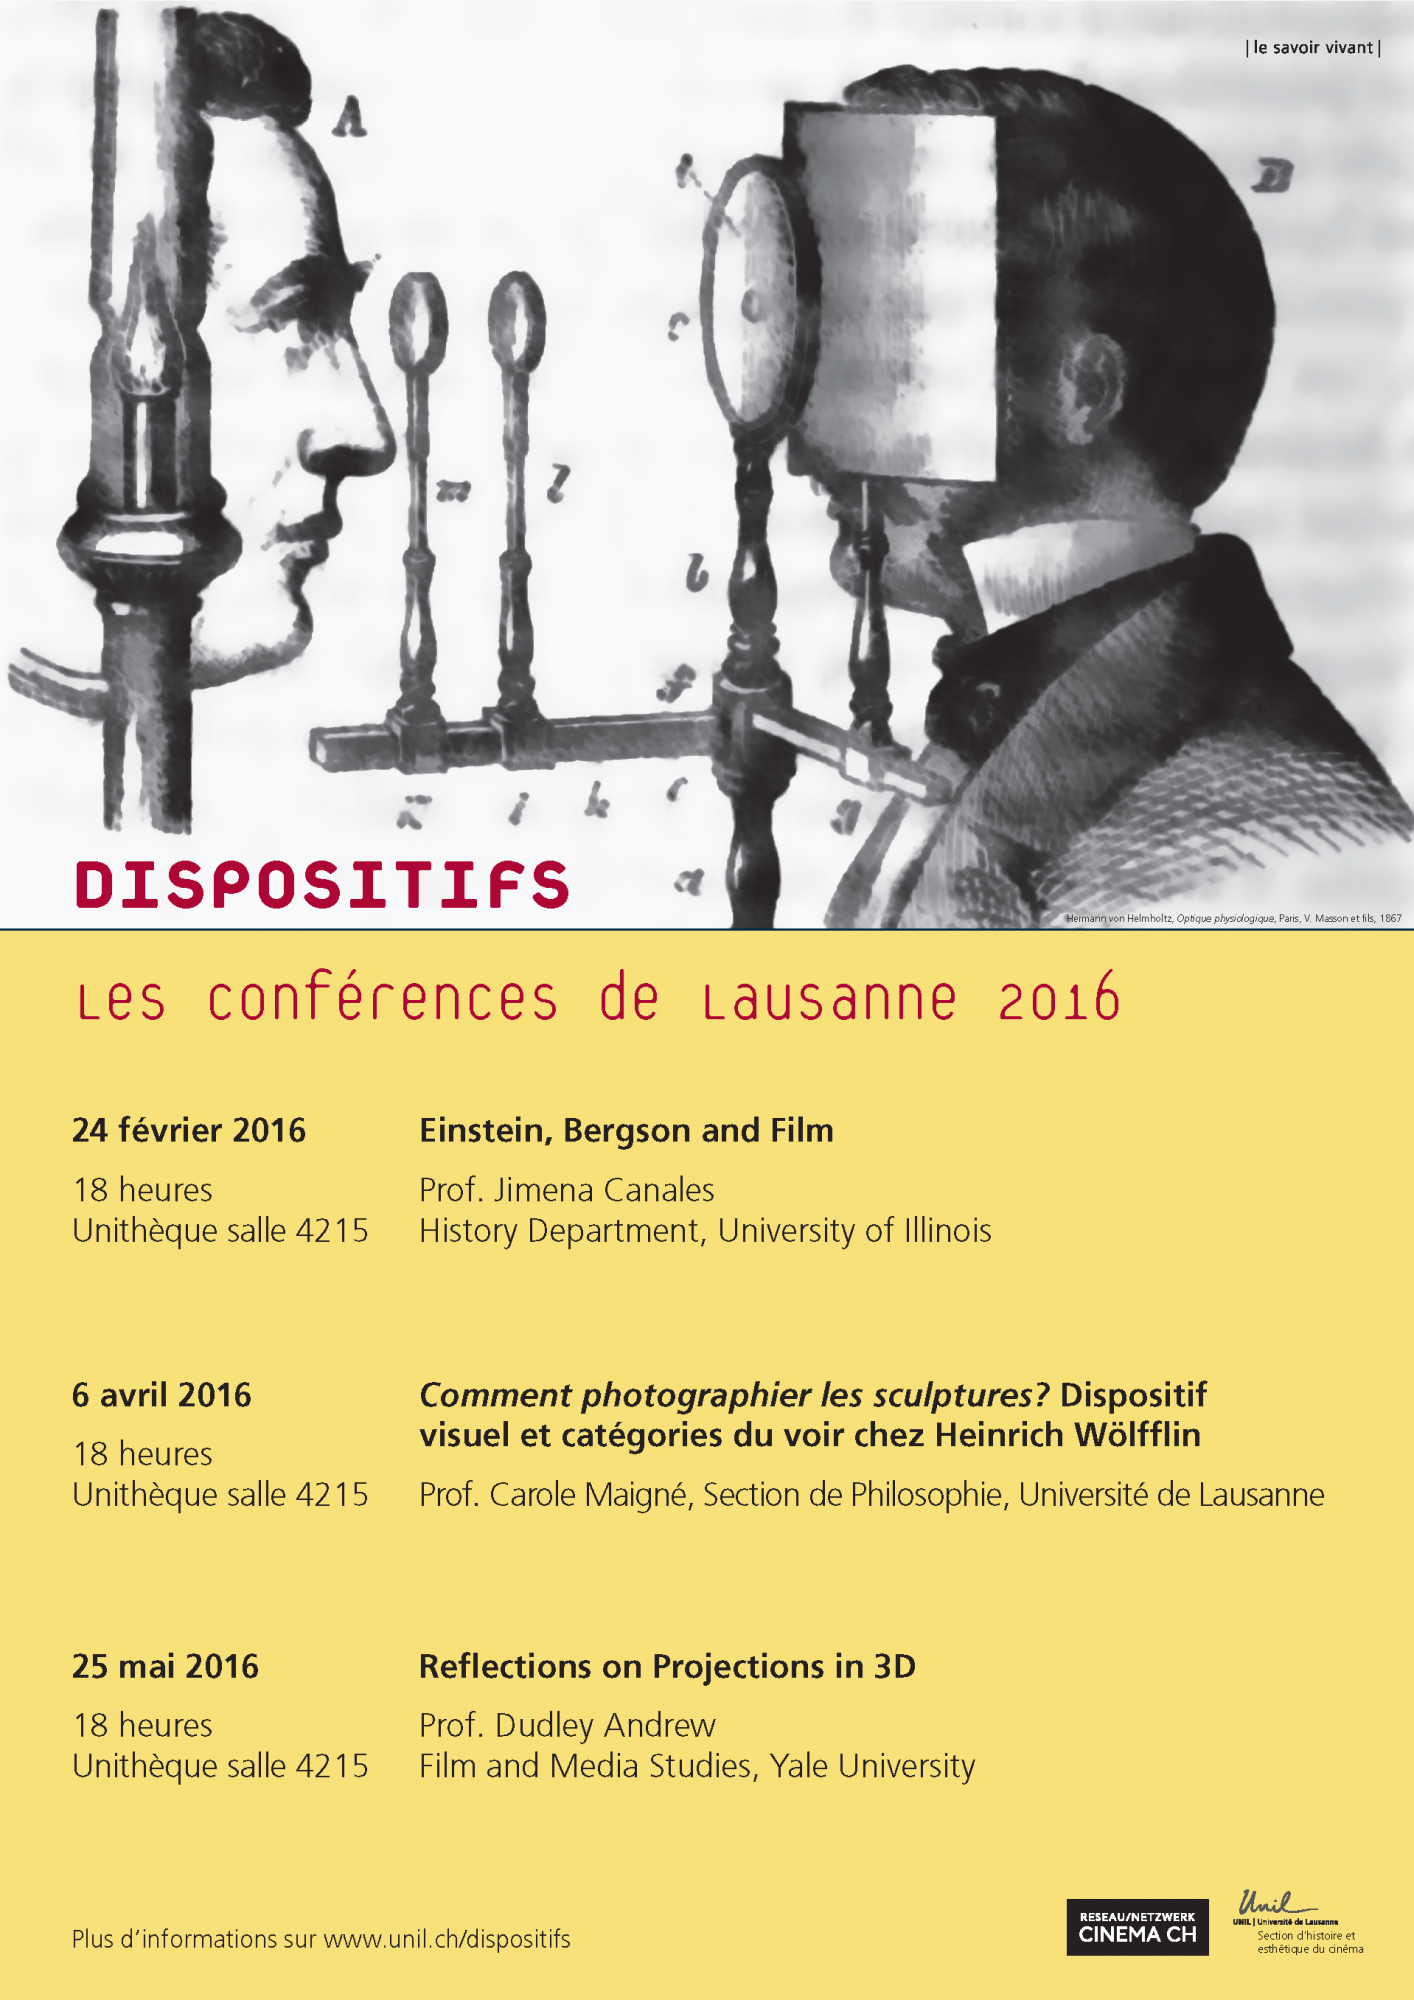 http://wp.unil.ch/dispositifs/files/2013/06/Dispositif_2016.png